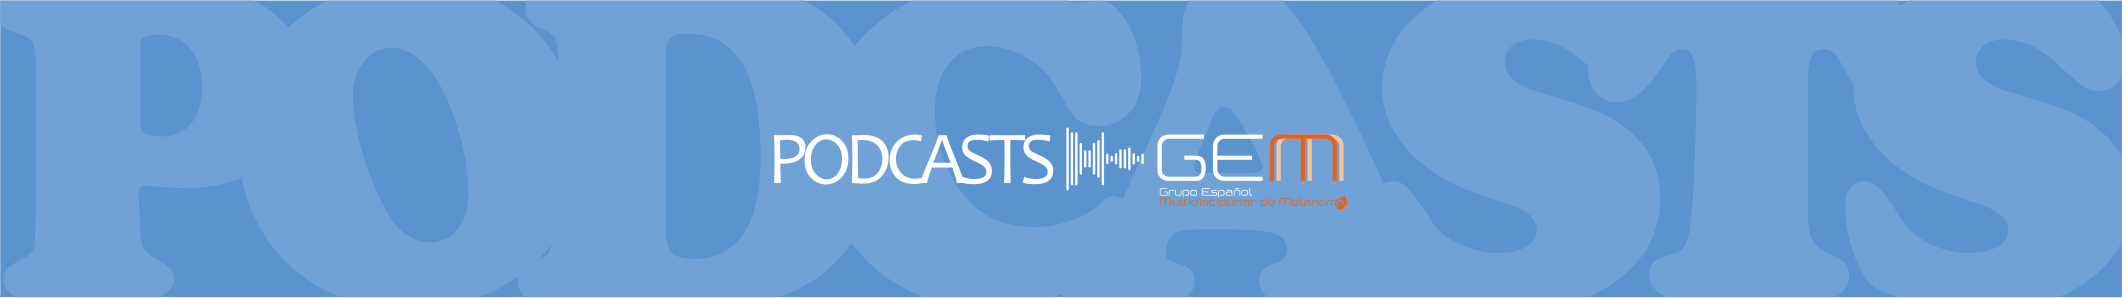 Banner Podcasts (1)